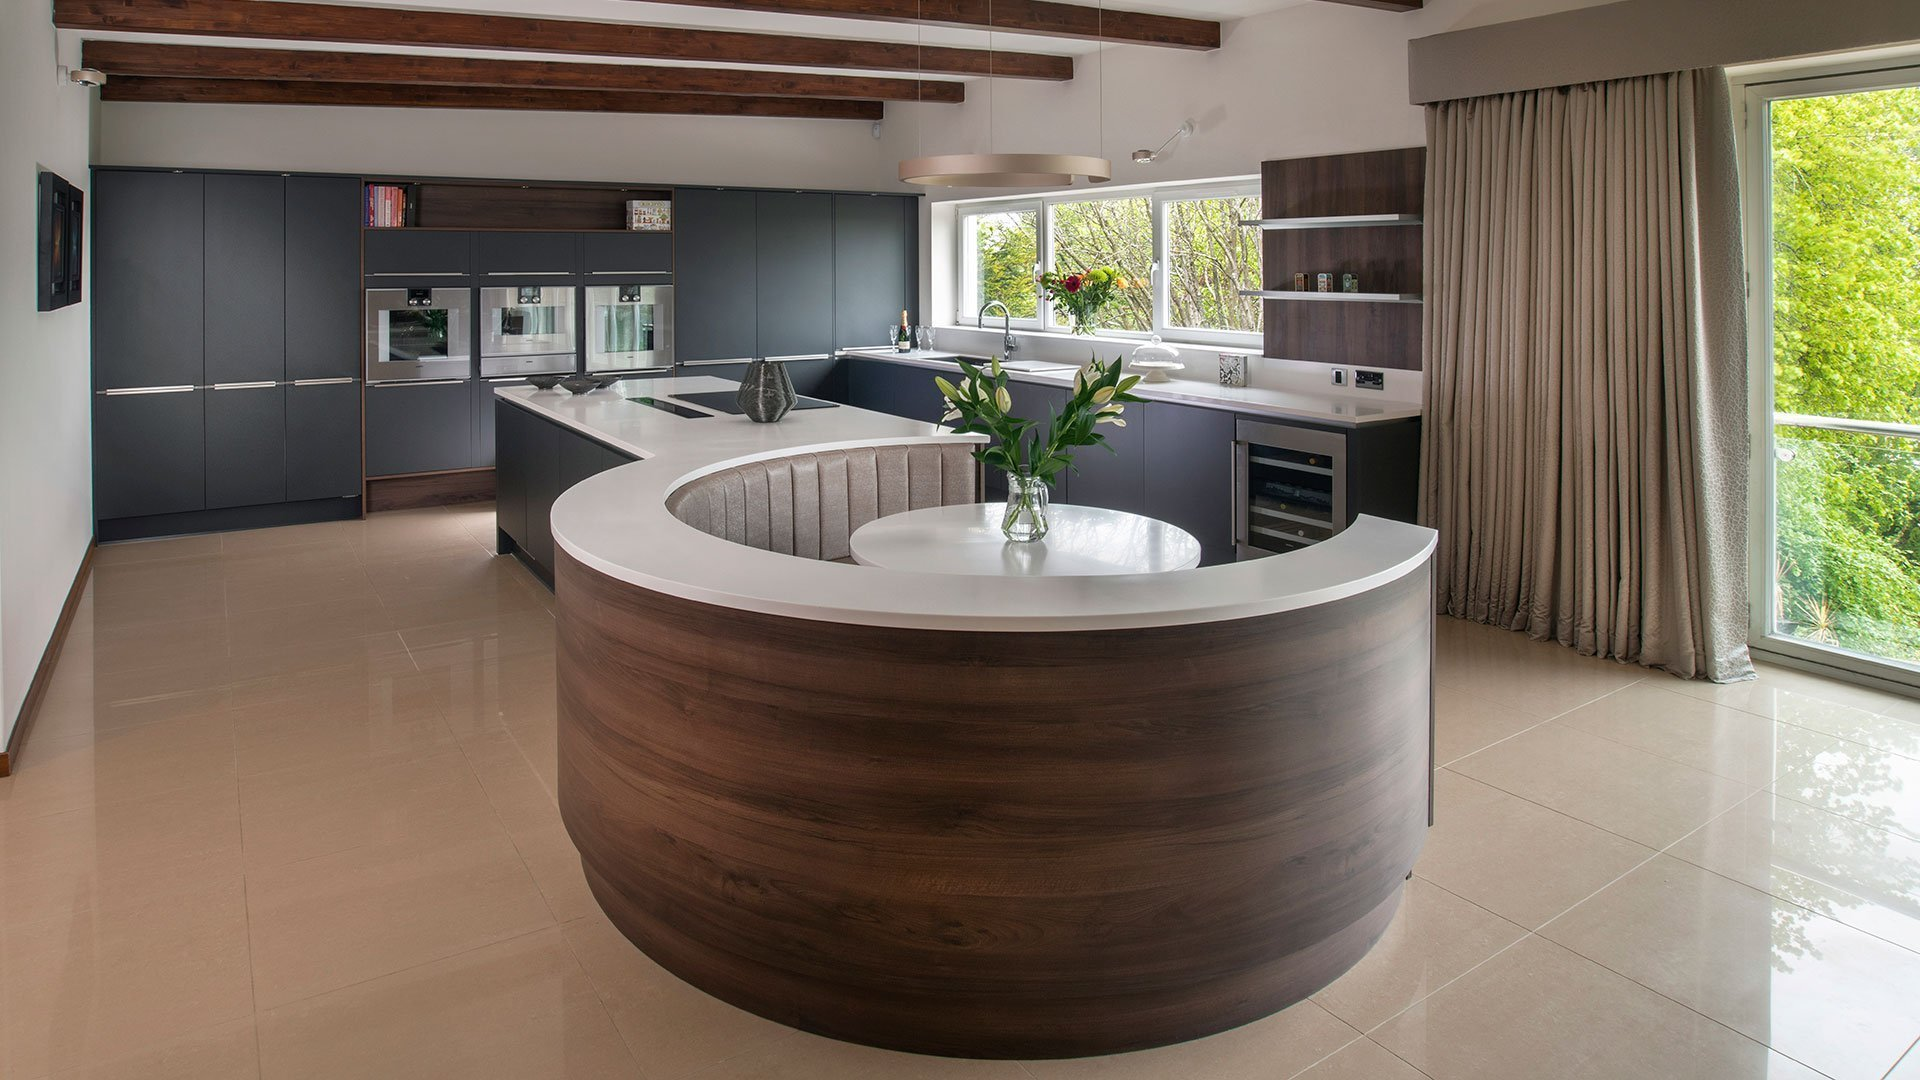 Corian® island with integrated curved seating area